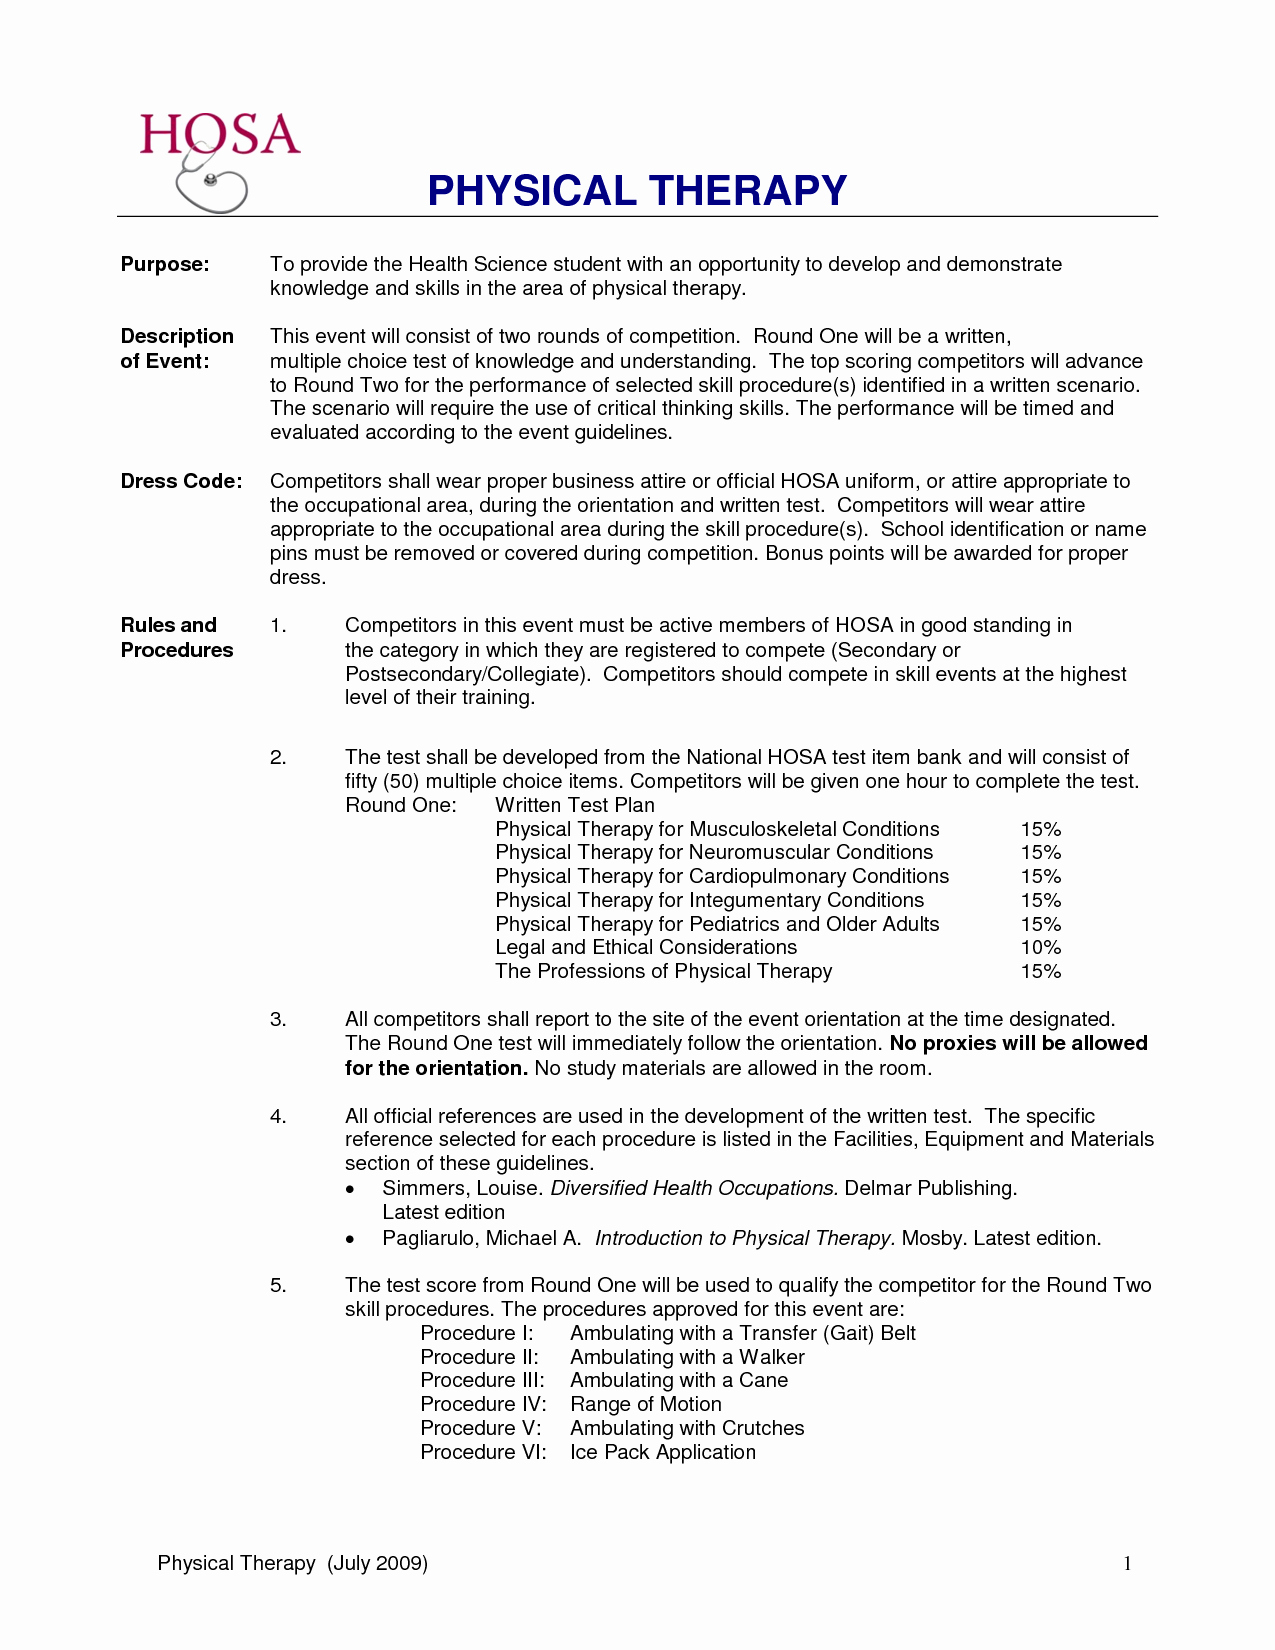 Physical therapy Cover Letter Template - Cover Letter for therapist Job Best Resume Template Physical